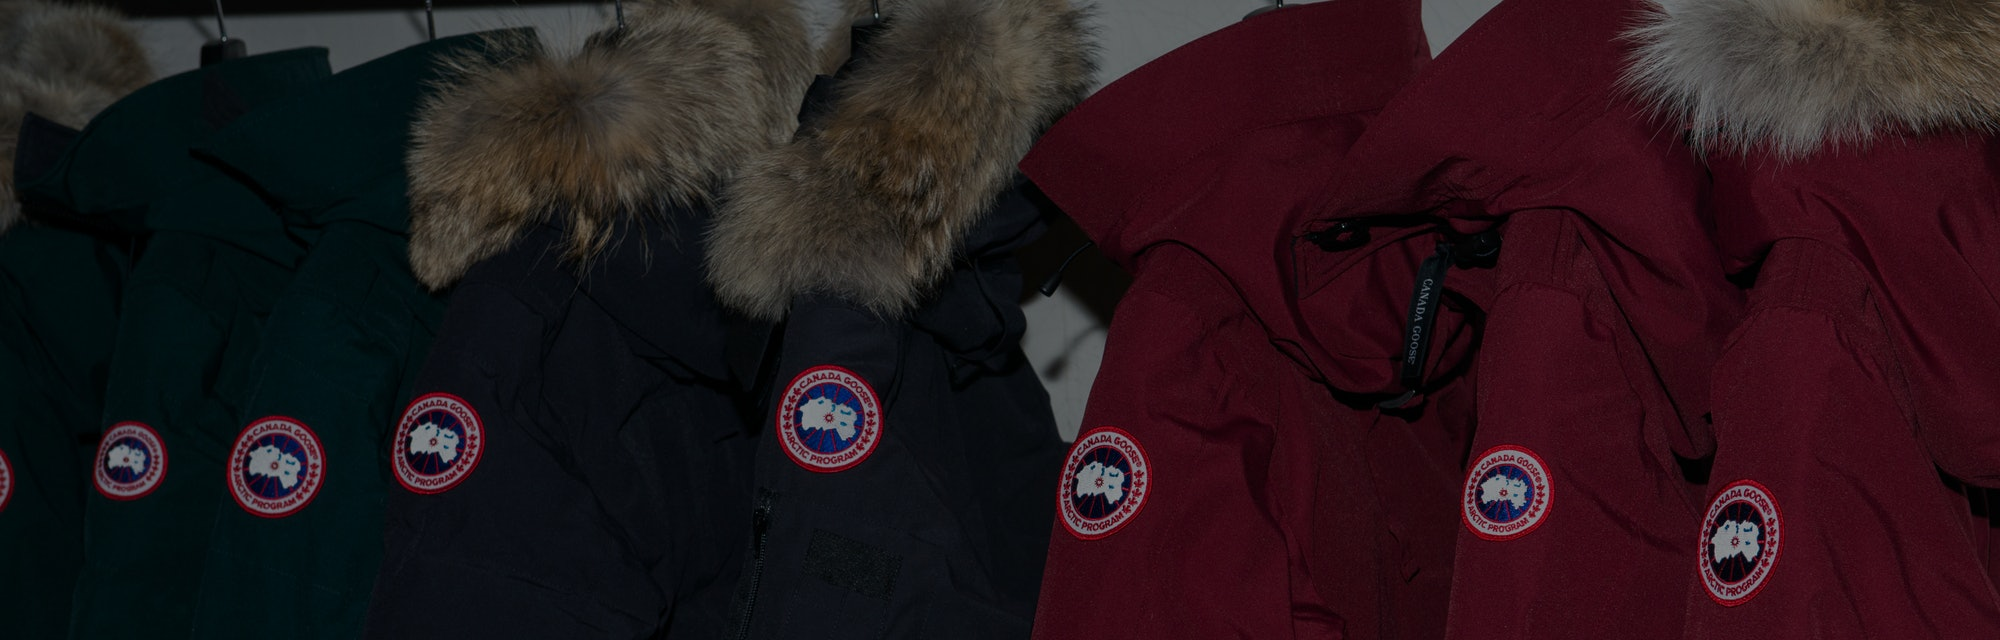 NEW YORK, NY - NOVEMBER 16:  A view inside Canada Goose's U.S. flagship store on November 16, 2016 in New York City.  (Photo by Noam Galai/WireImage)